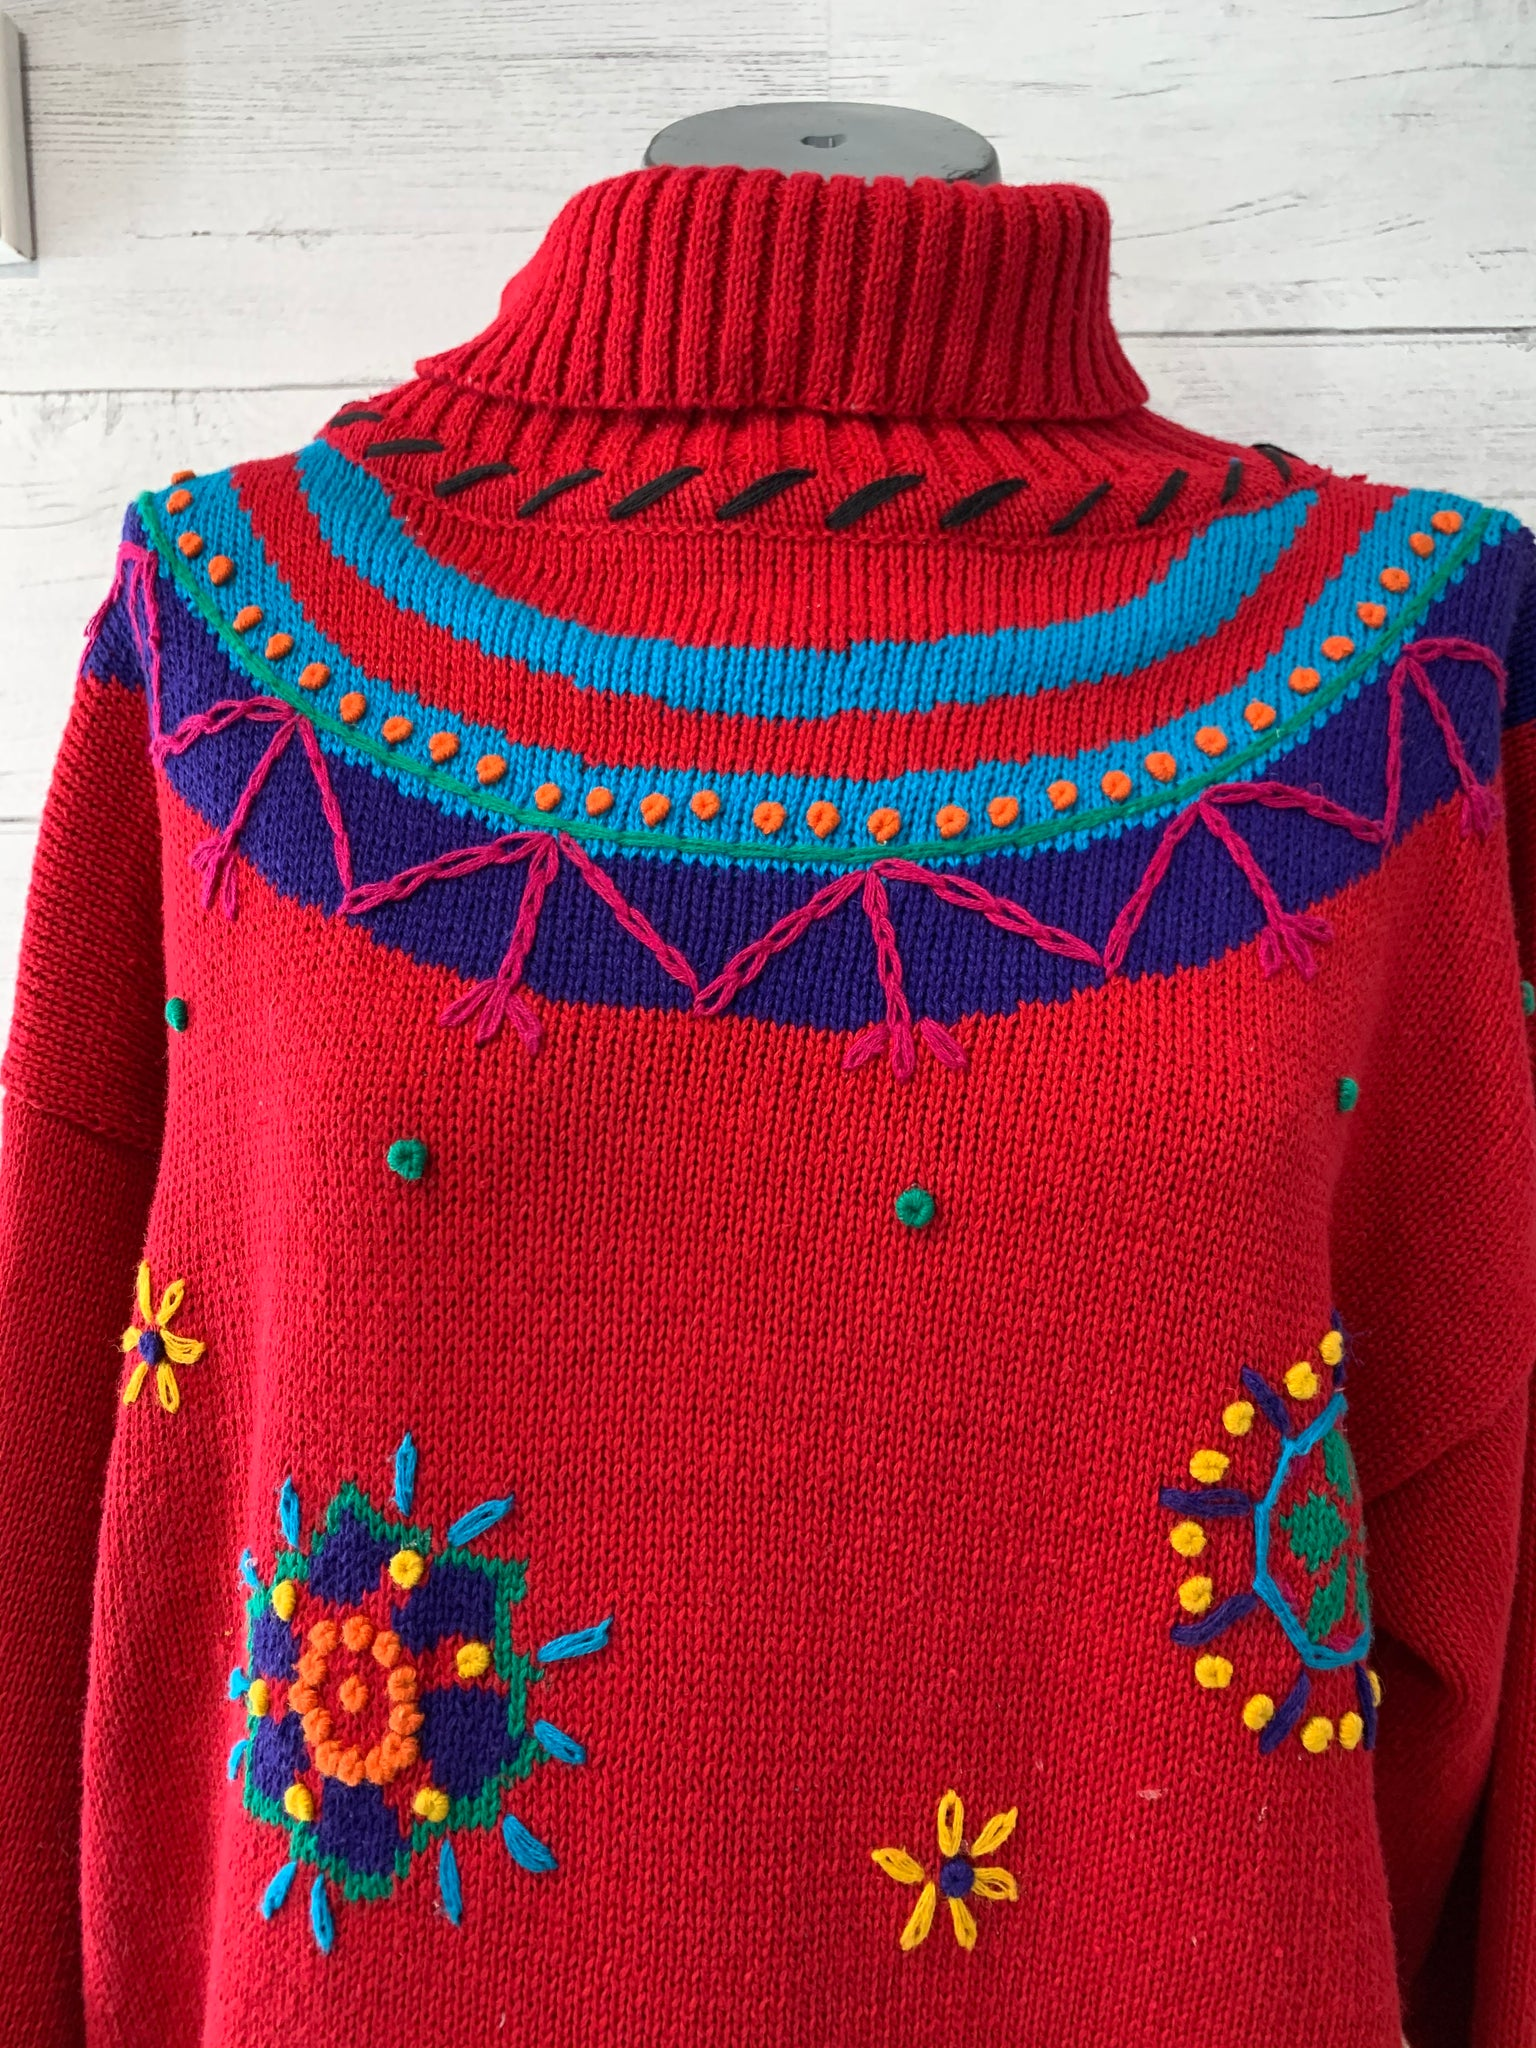 80's Turtle Neck Embroiled Sweater By L'EAU VIVE